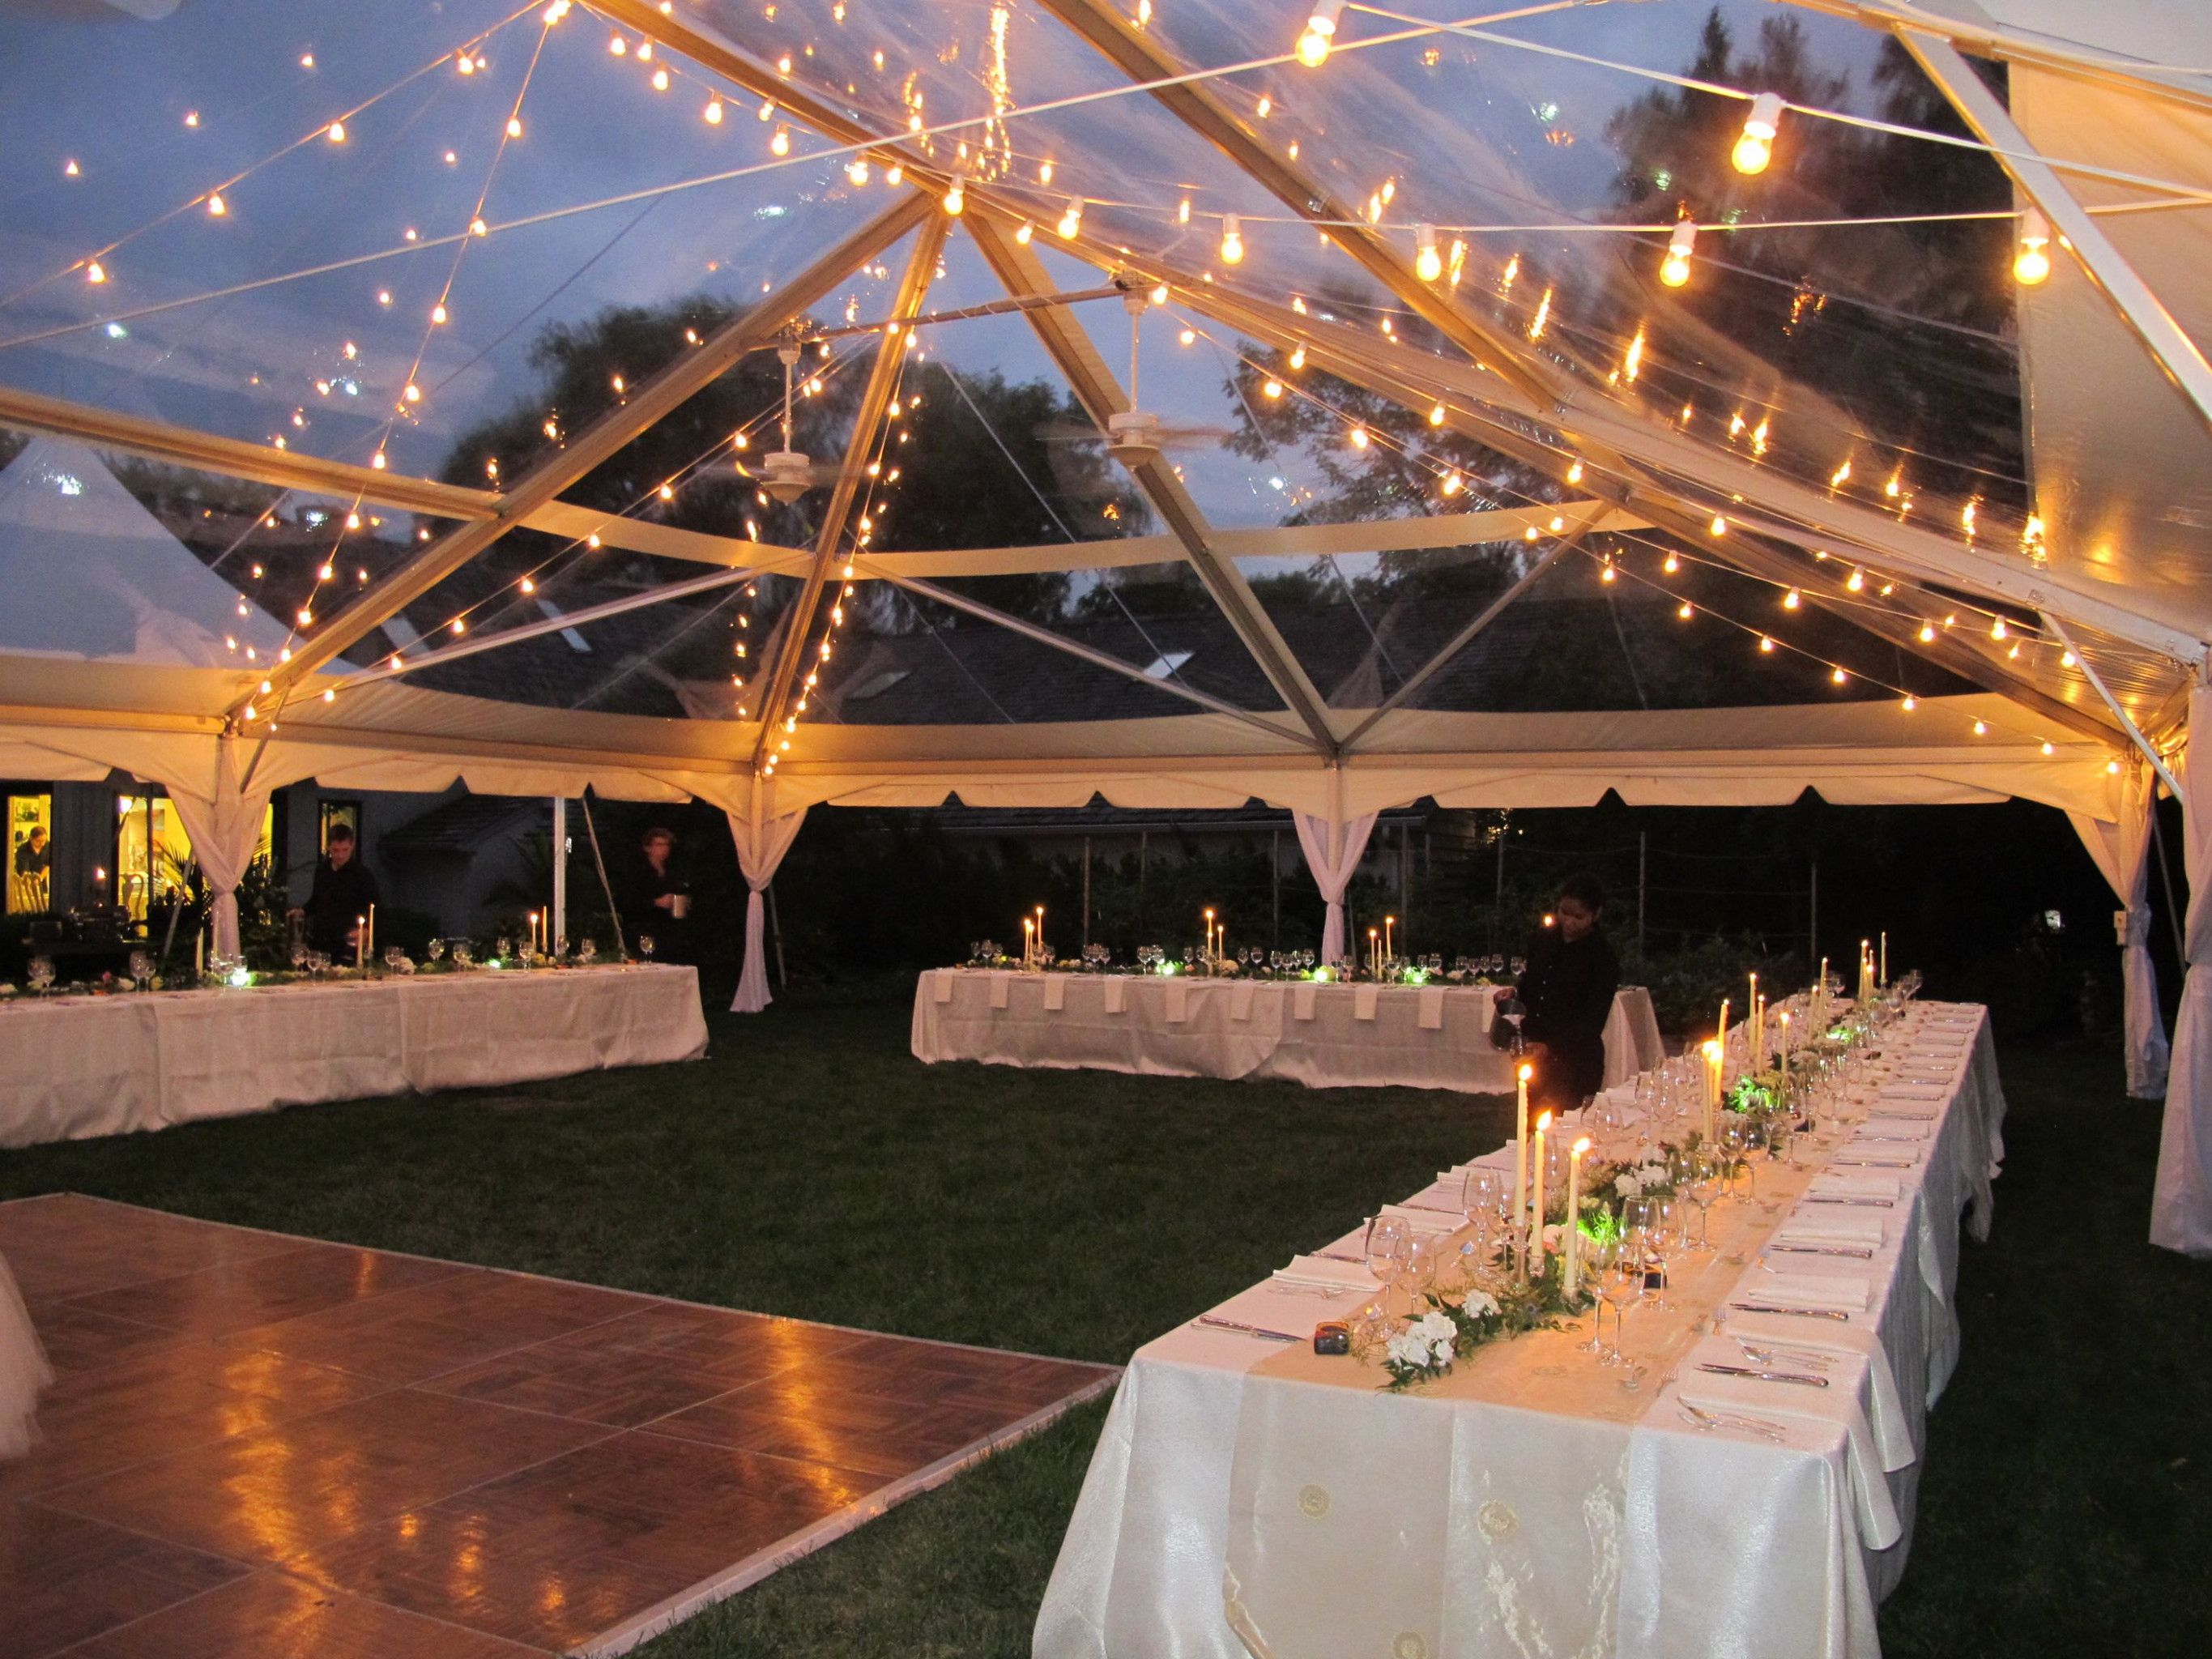 Backyard Wedding Marquee Clear Tent Tent Reception Clear Tent